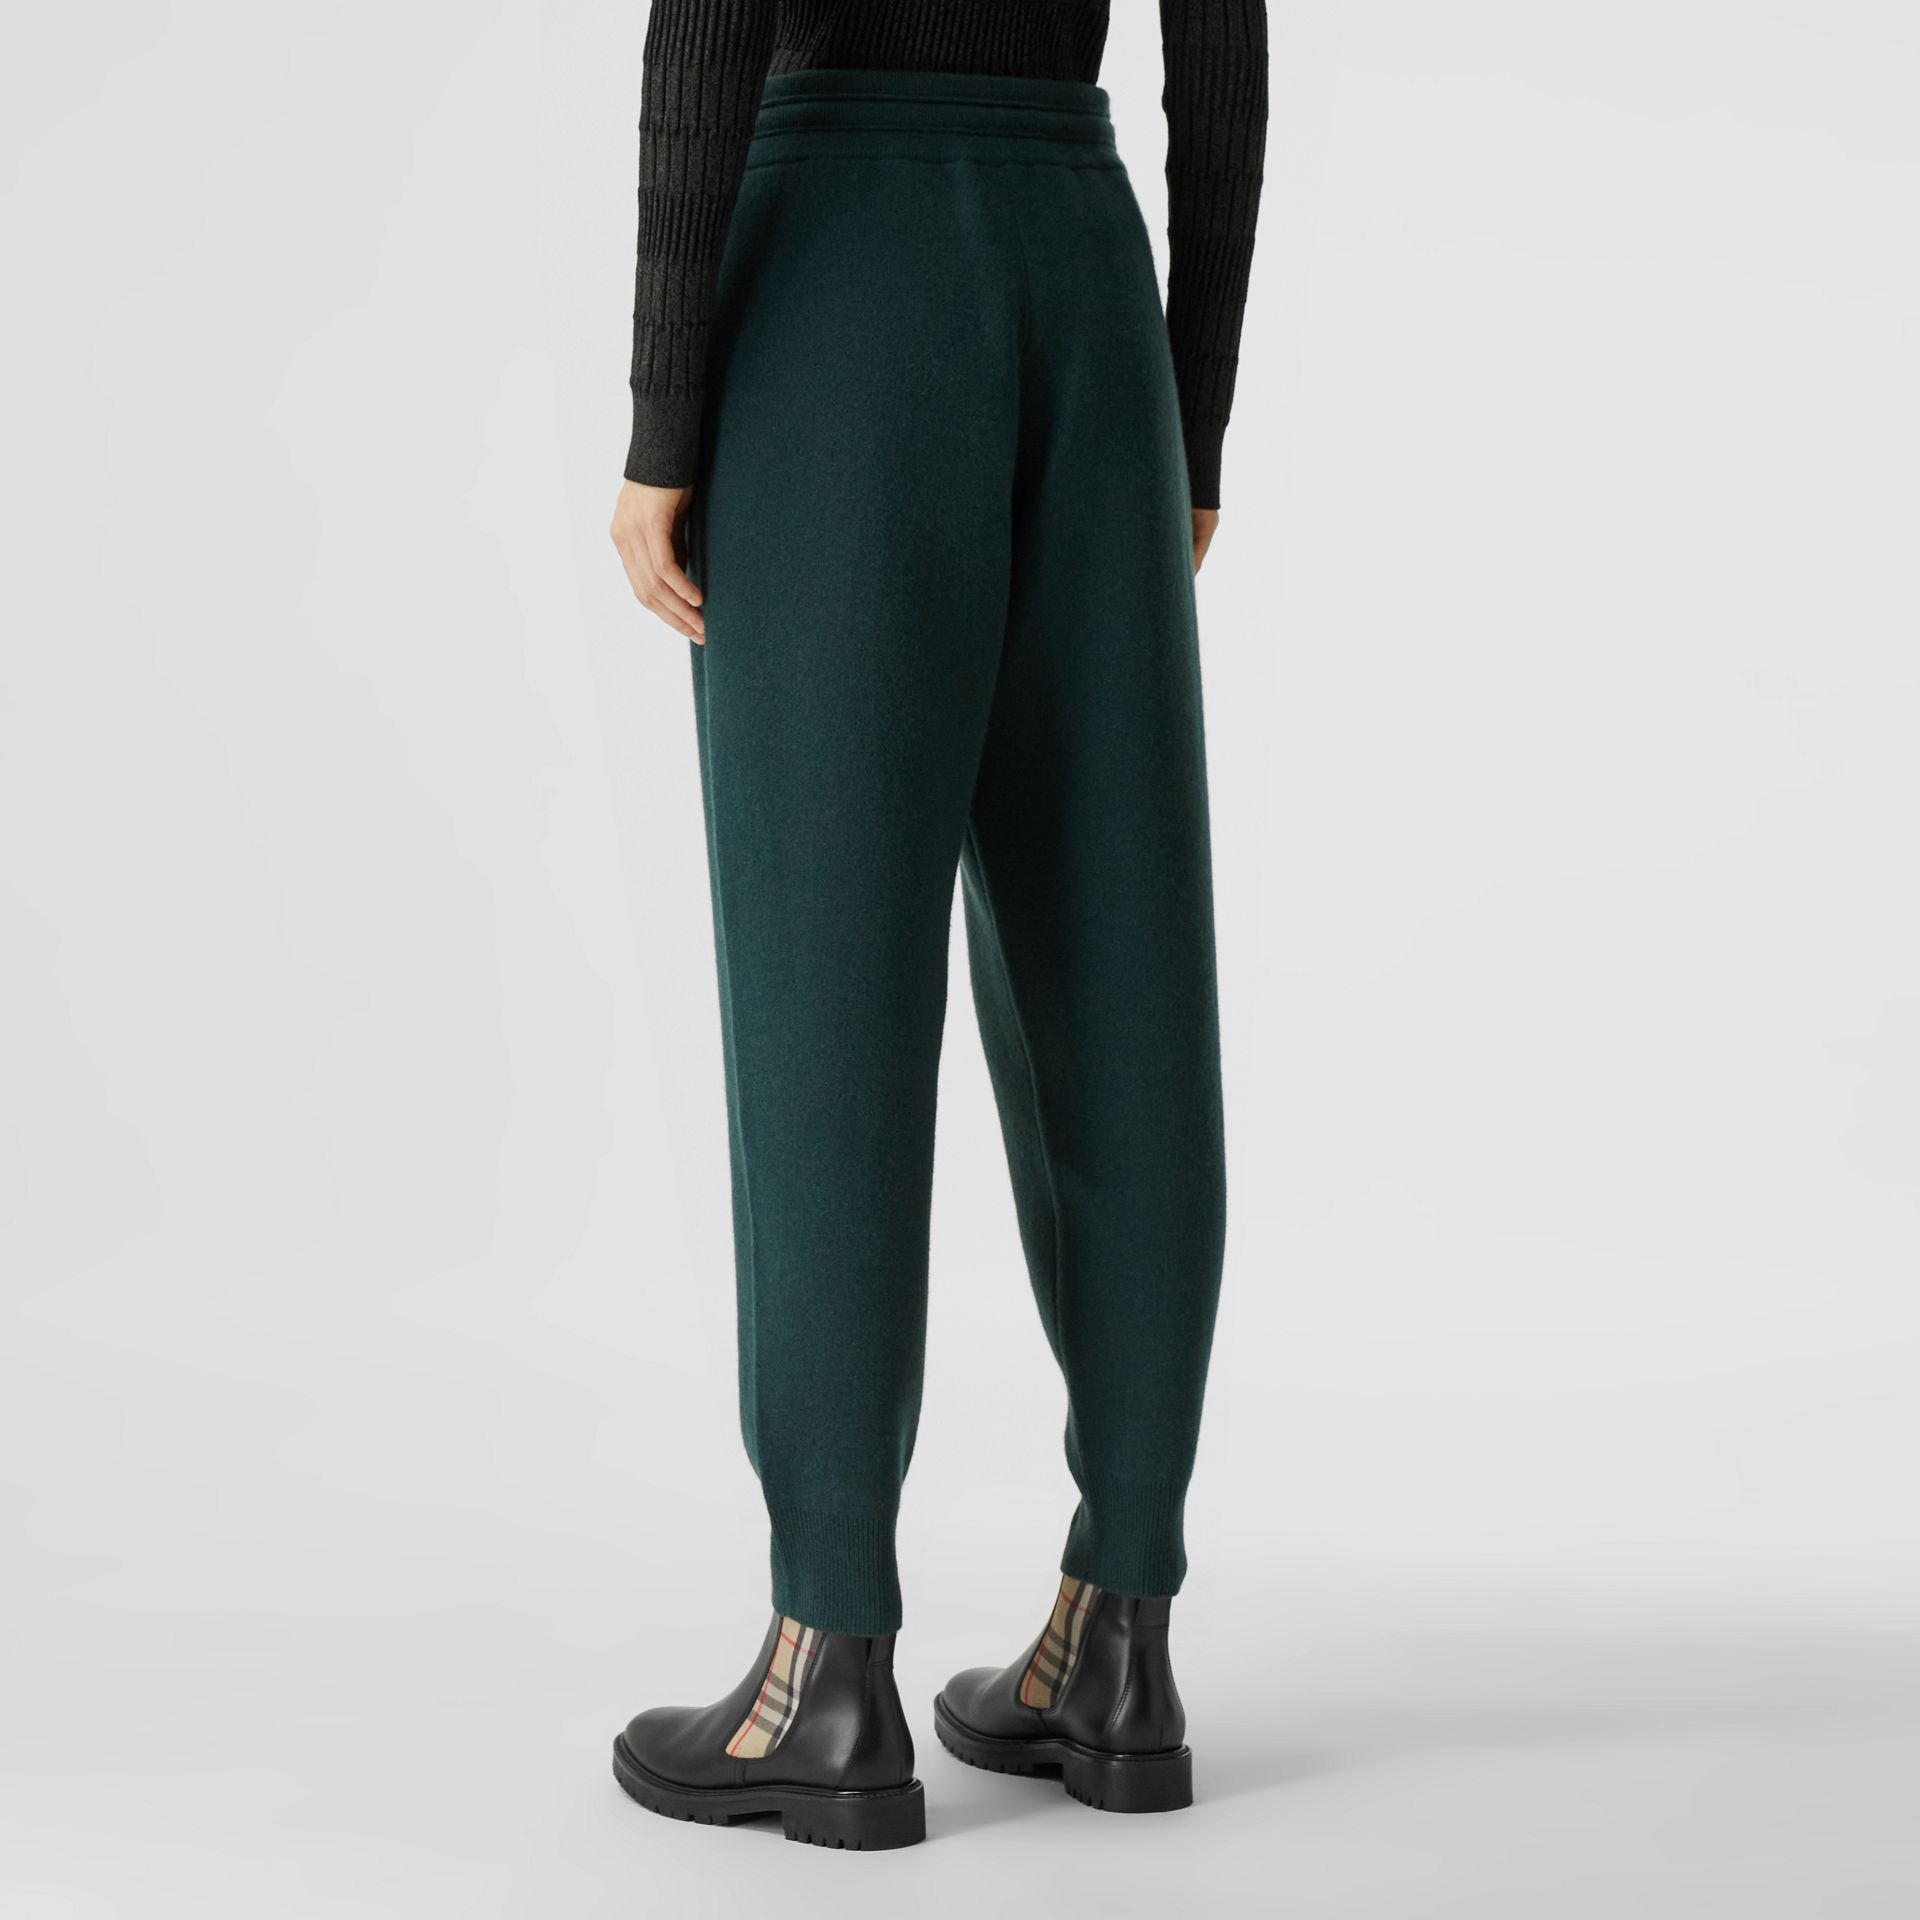 Monogram Motif Cashmere Blend Jogging Pants in Bottle Green - Women | Burberry - gallery image 2